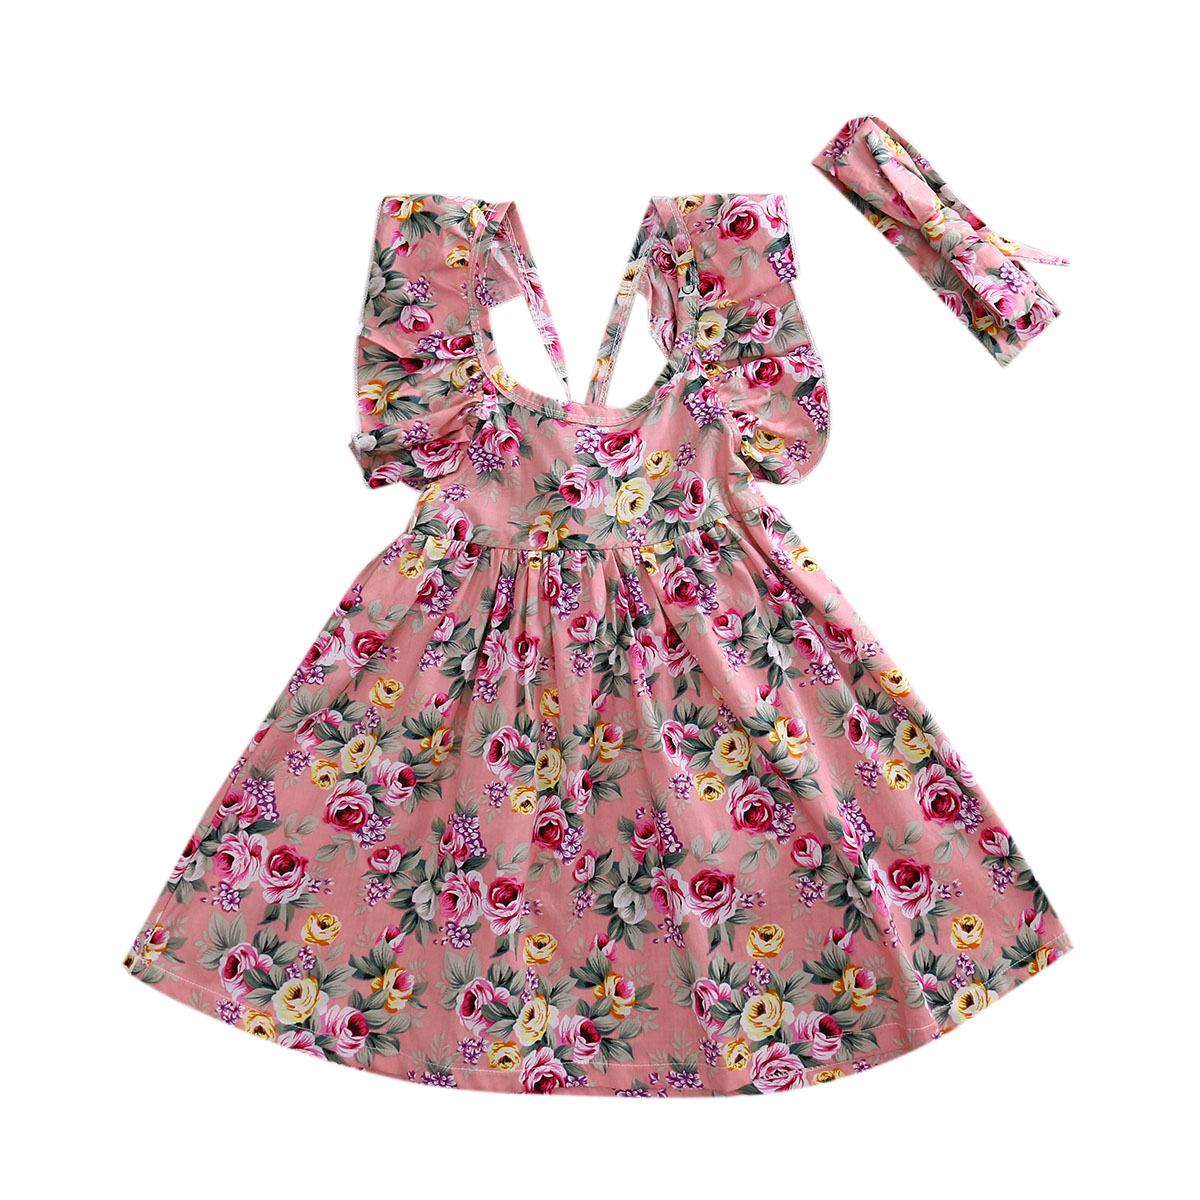 2017 New Summer Girls Floral Dress Ruffles Children Kids Backless Party Dresses +Headband 2PCS Sundress Flower Clothes 1-6 Years кровать из массива дерева xuan elegance furniture